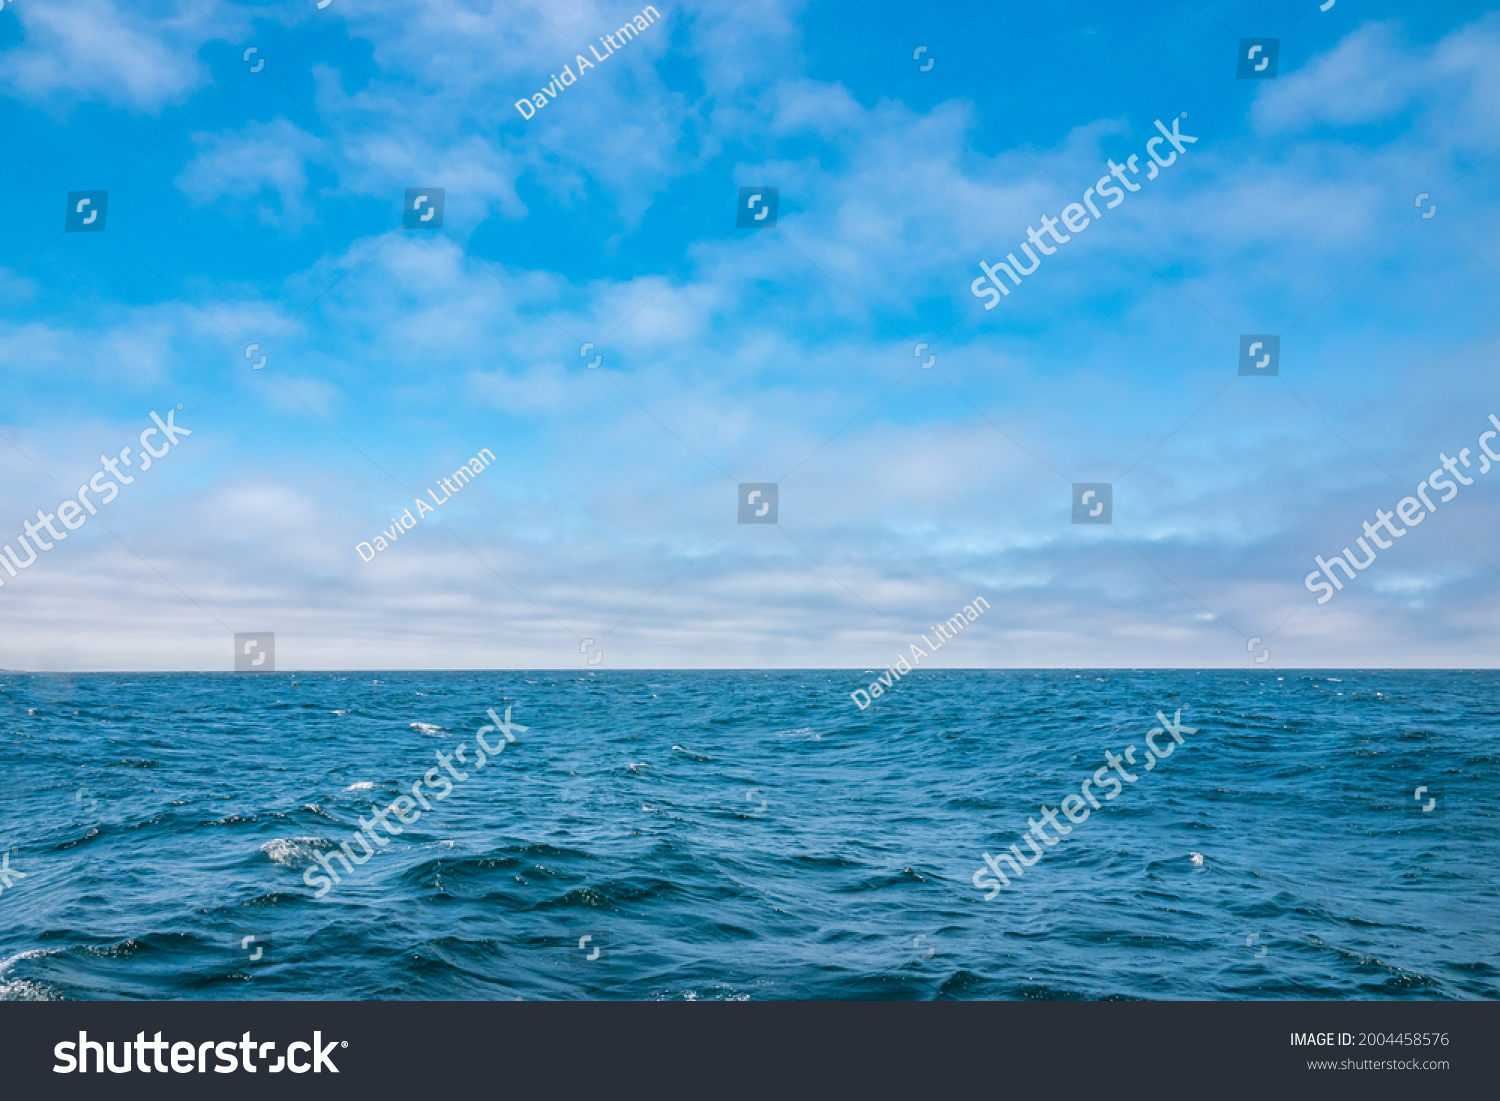 Colorful blue Pacific Ocean and partly cloudy sky background with copy space.